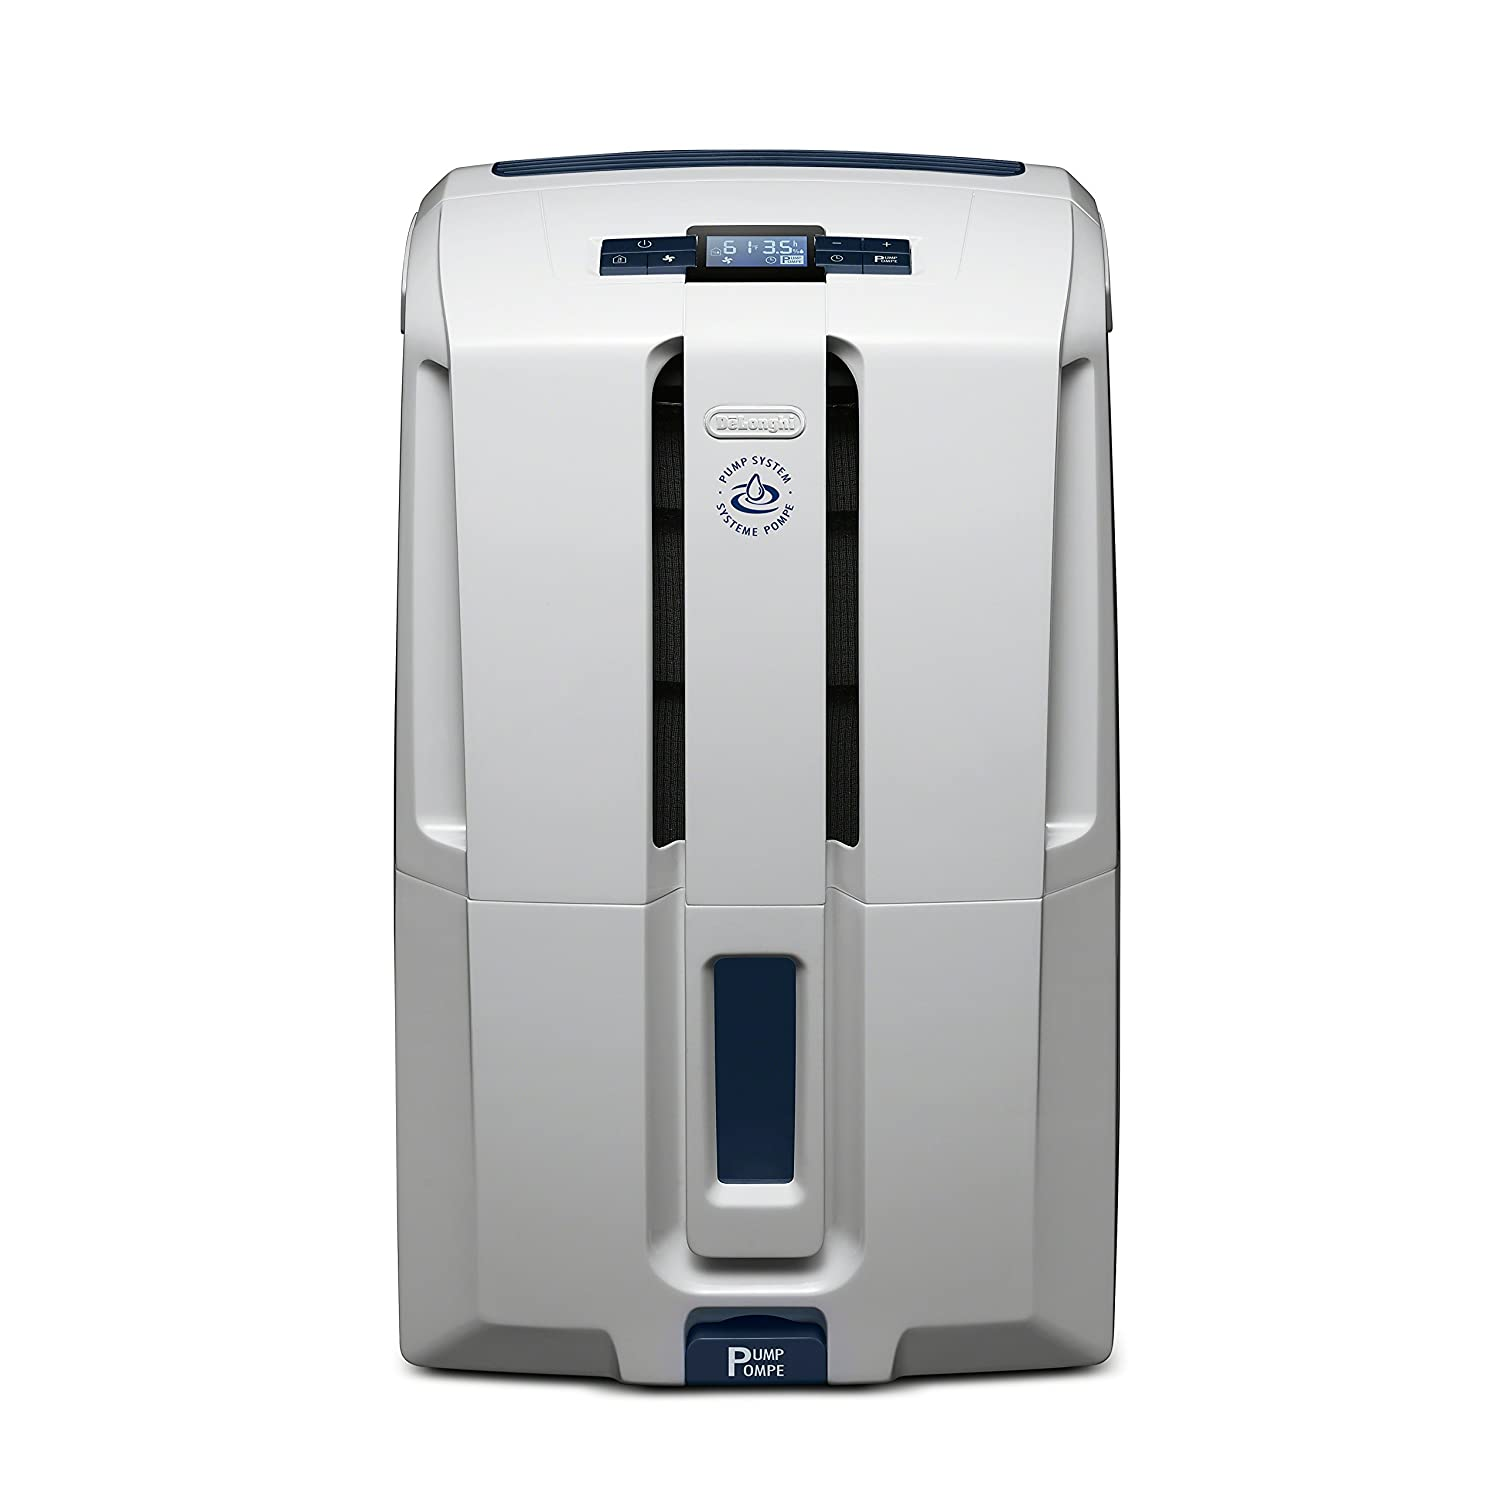 DeLonghi Energy Star 45 Pint Dehumidifier with AAFA Certification White